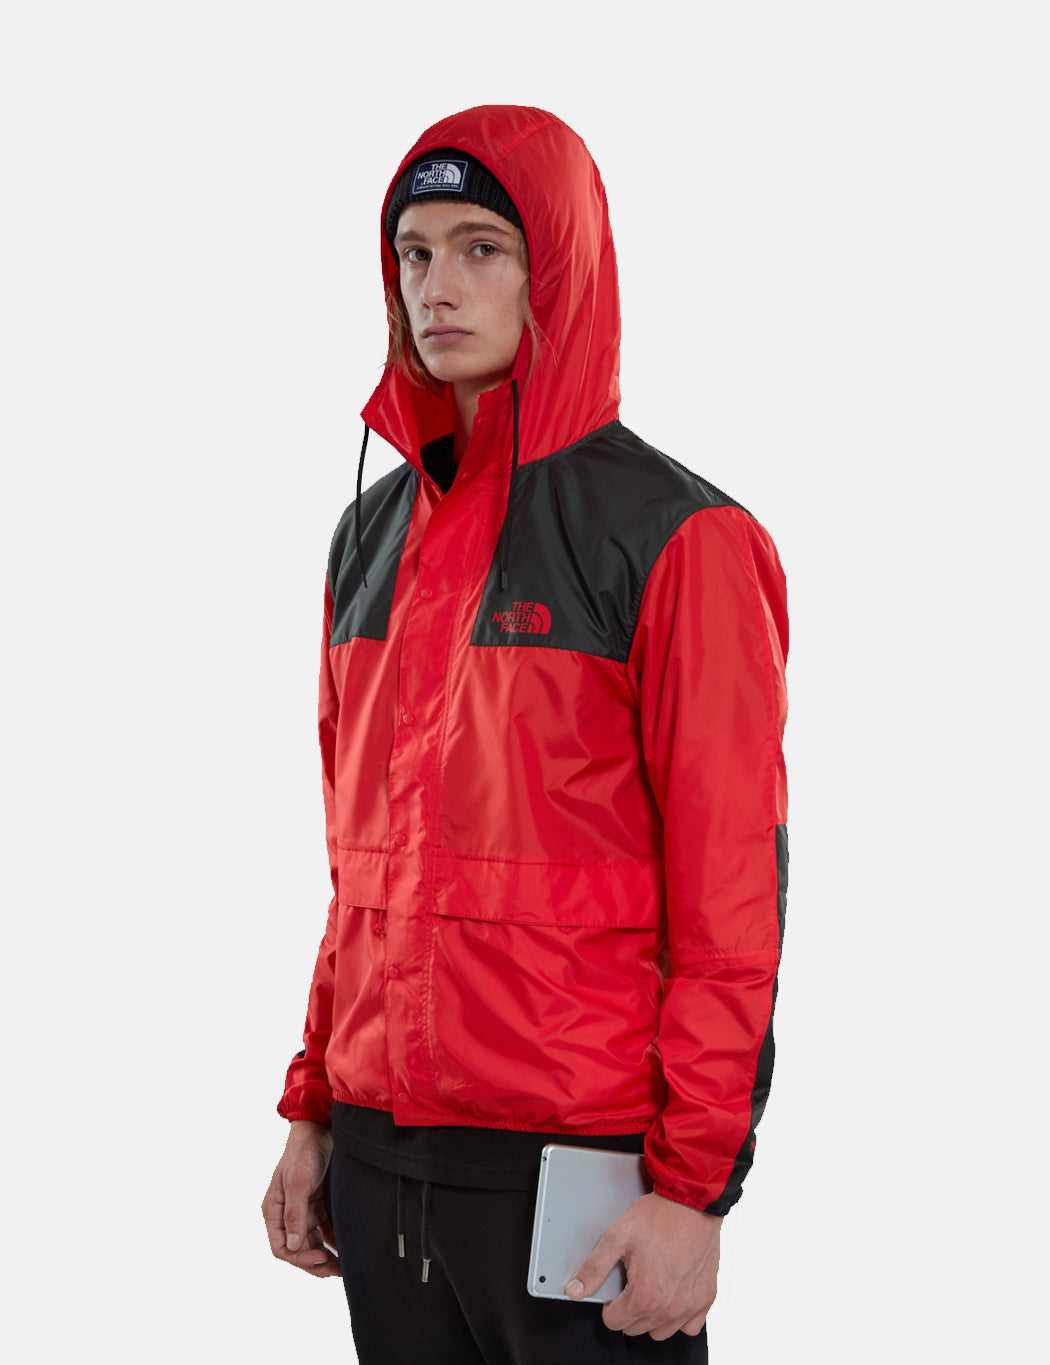 North Face 1985 Sea Cel Mountain Jacket - Red Black  feadd72a5aa9